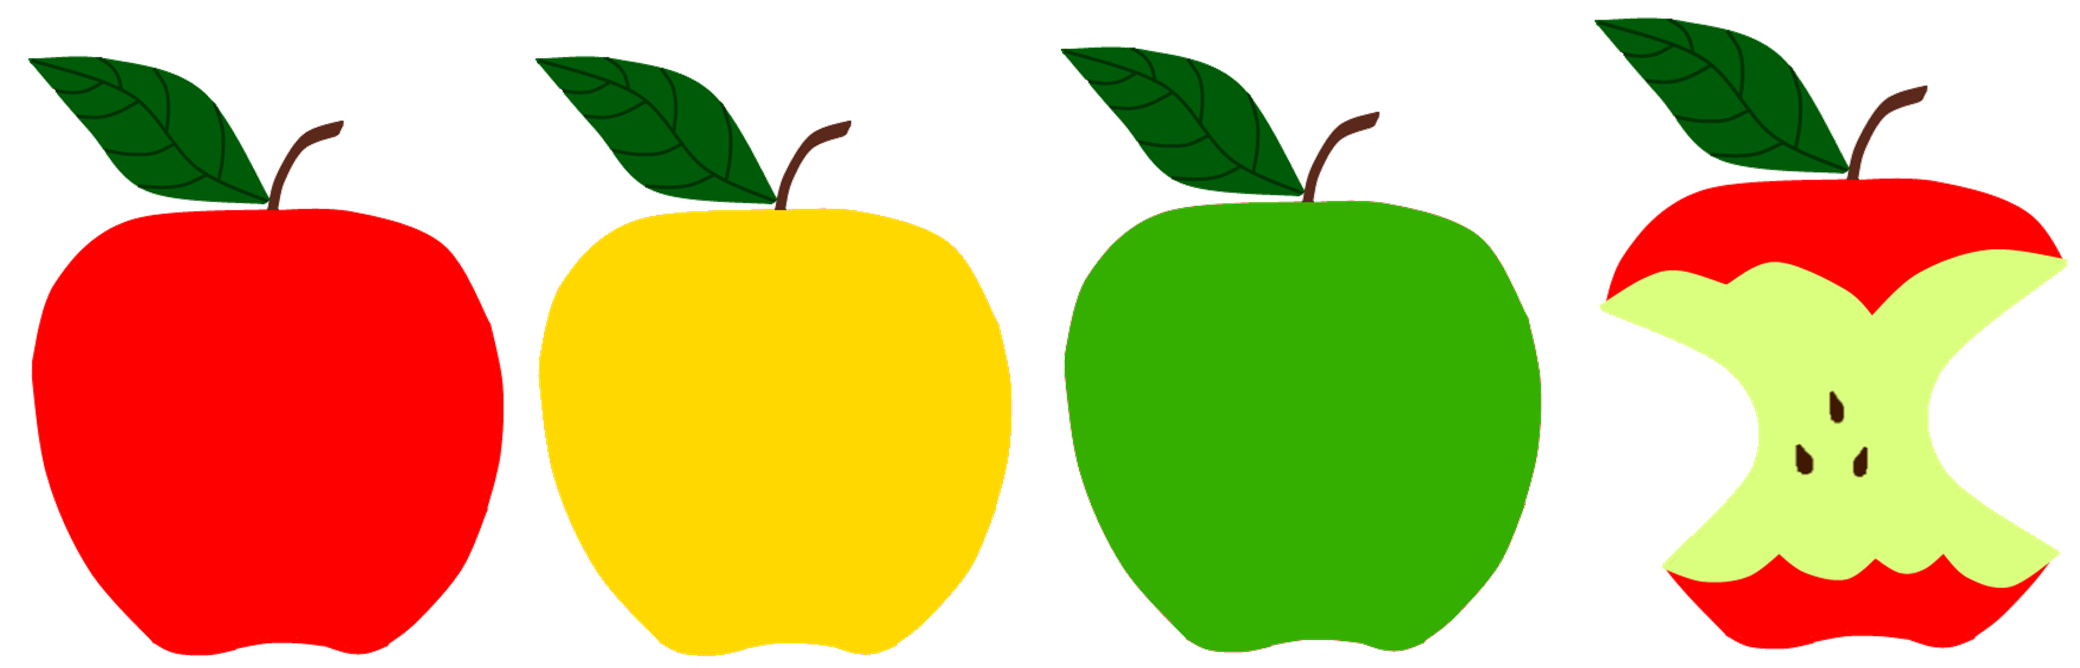 green and red apples clipart. red, green, yellow apples for apple storytime green and red clipart r